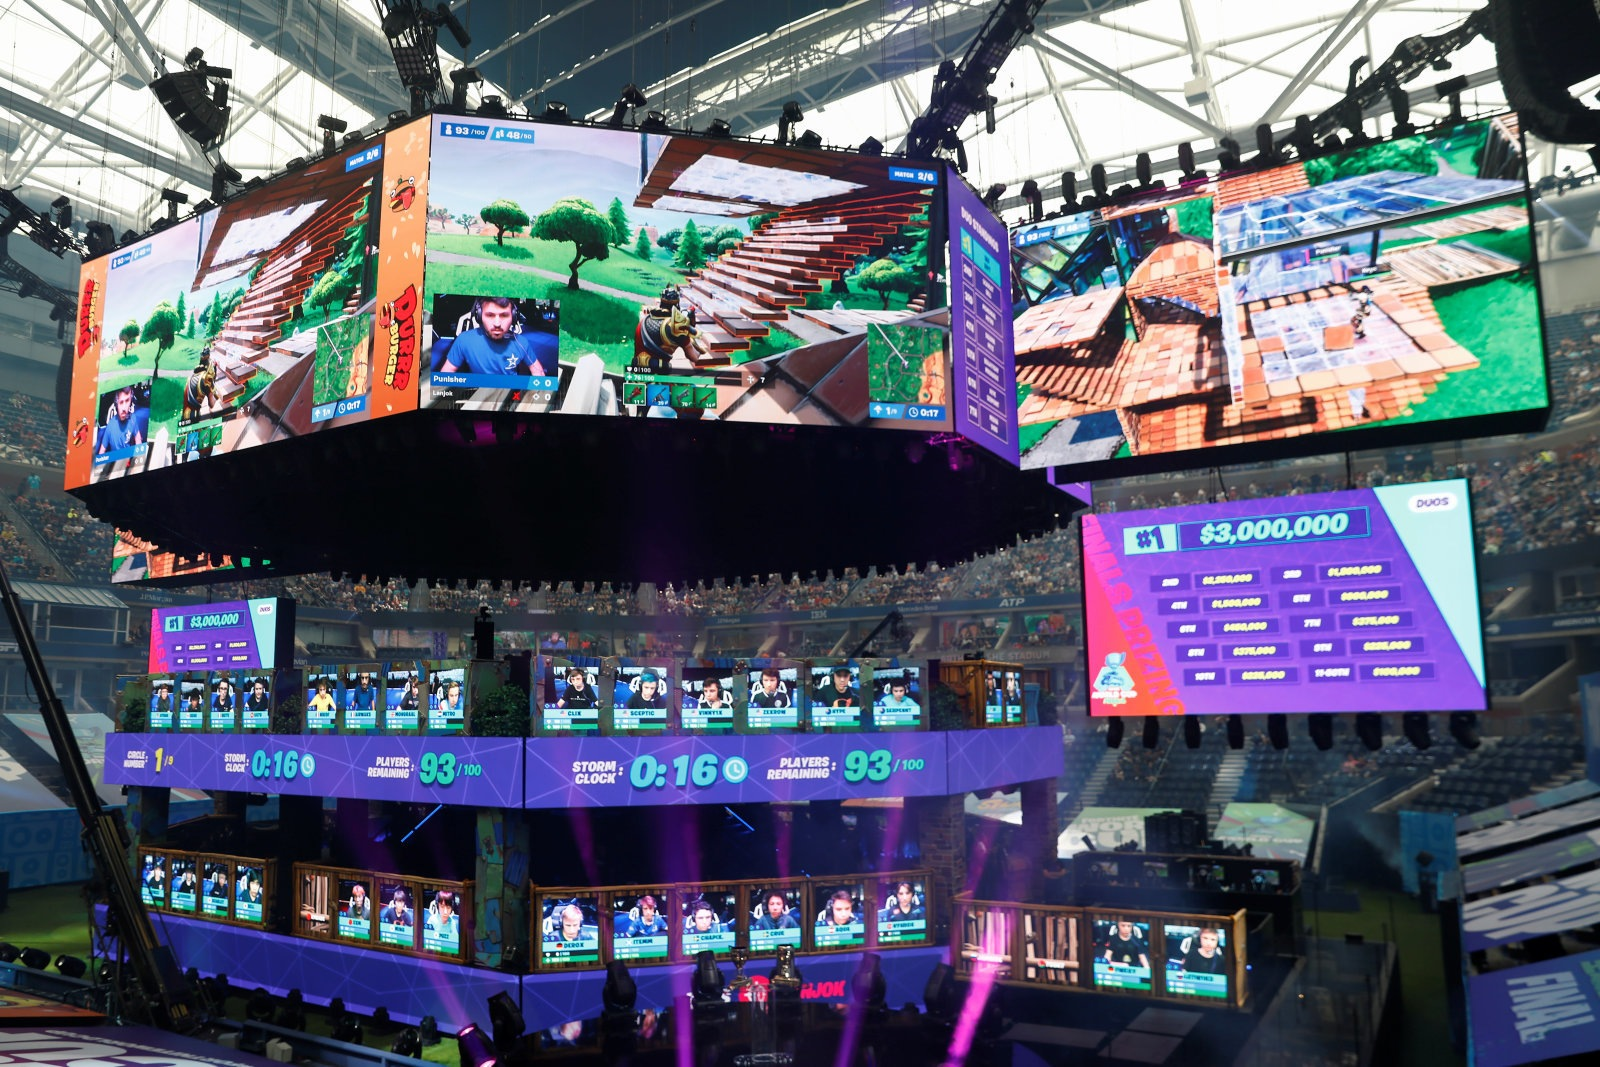 Fortnite conquers 2019 with $1.8 billion earned